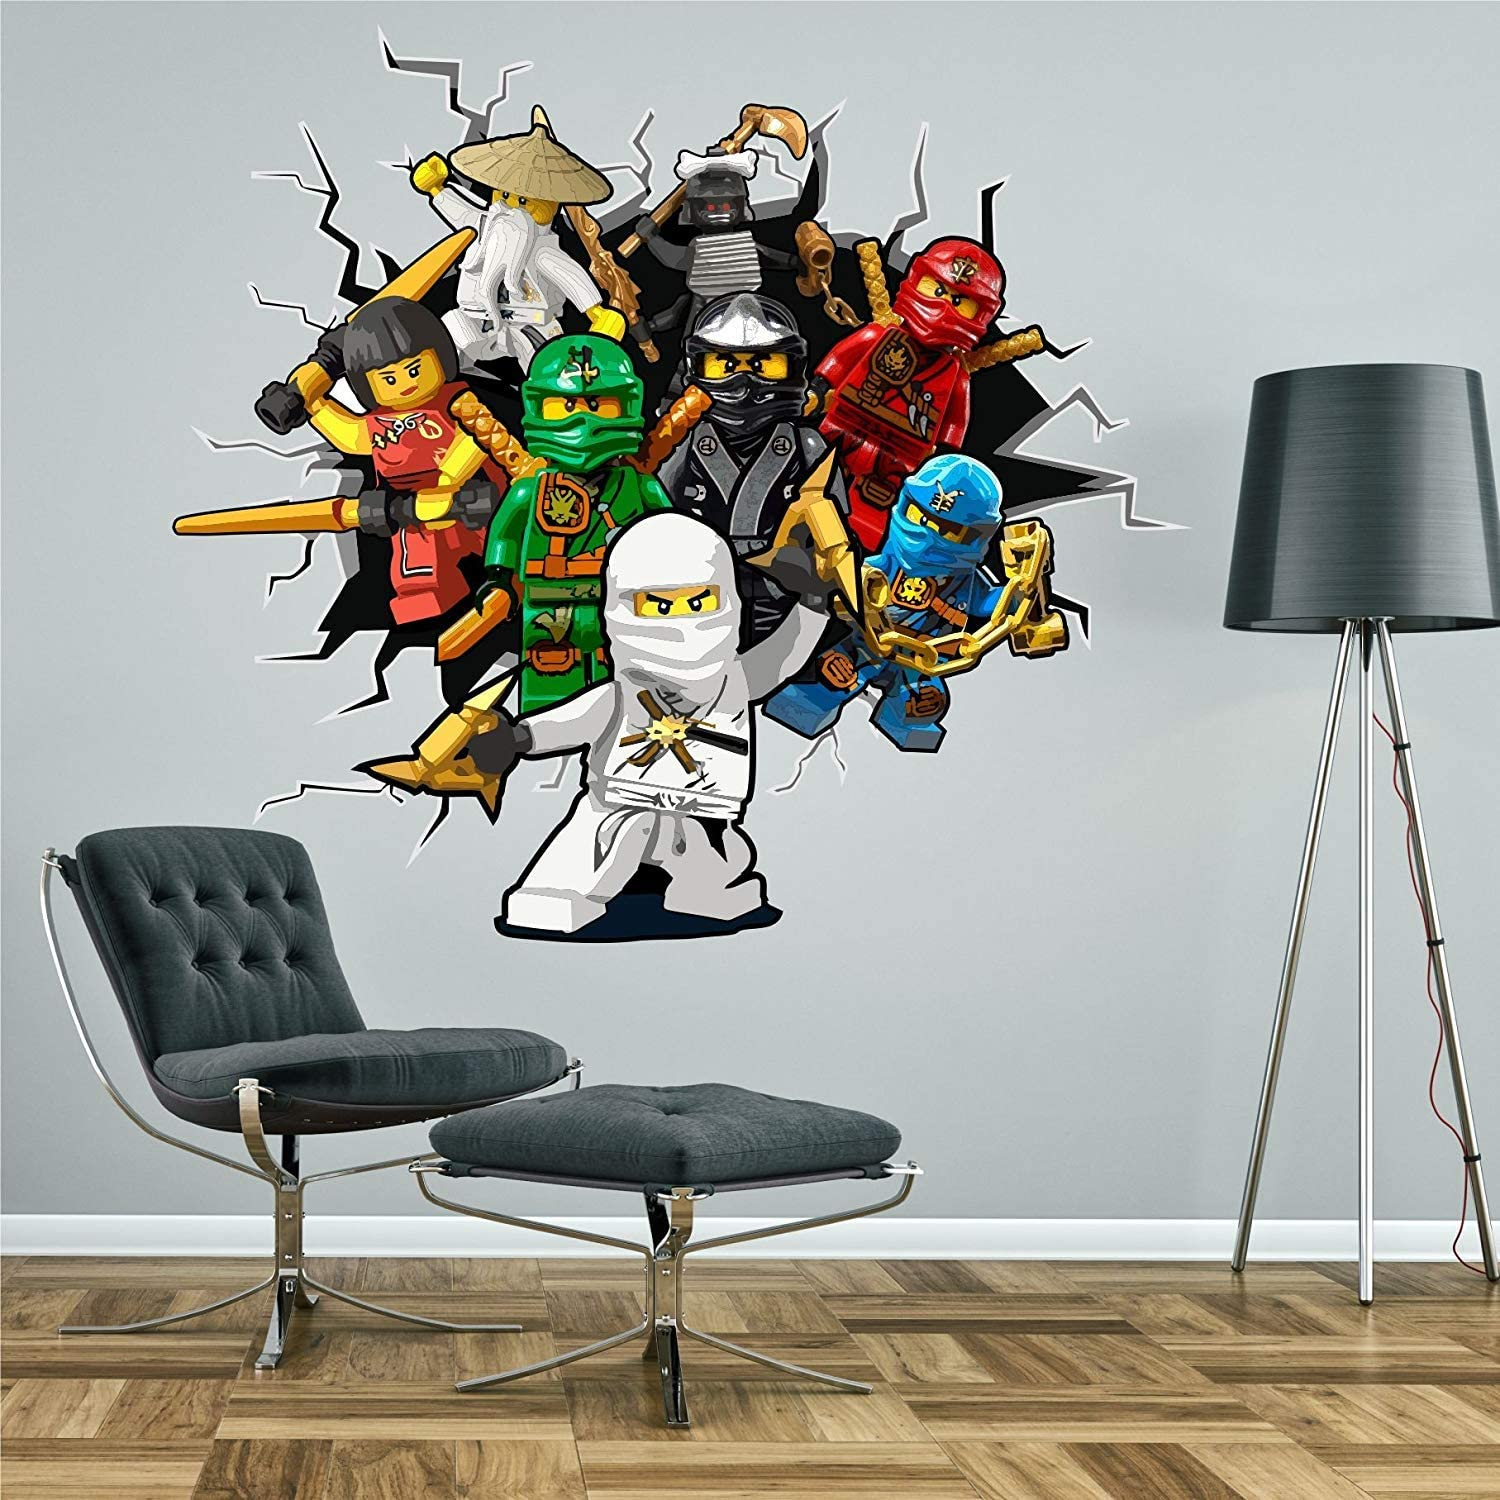 Lego Ninjago Legends Custom Vinyl Wall Decals Peel And Stick Wallpaper Gs145 Ebay